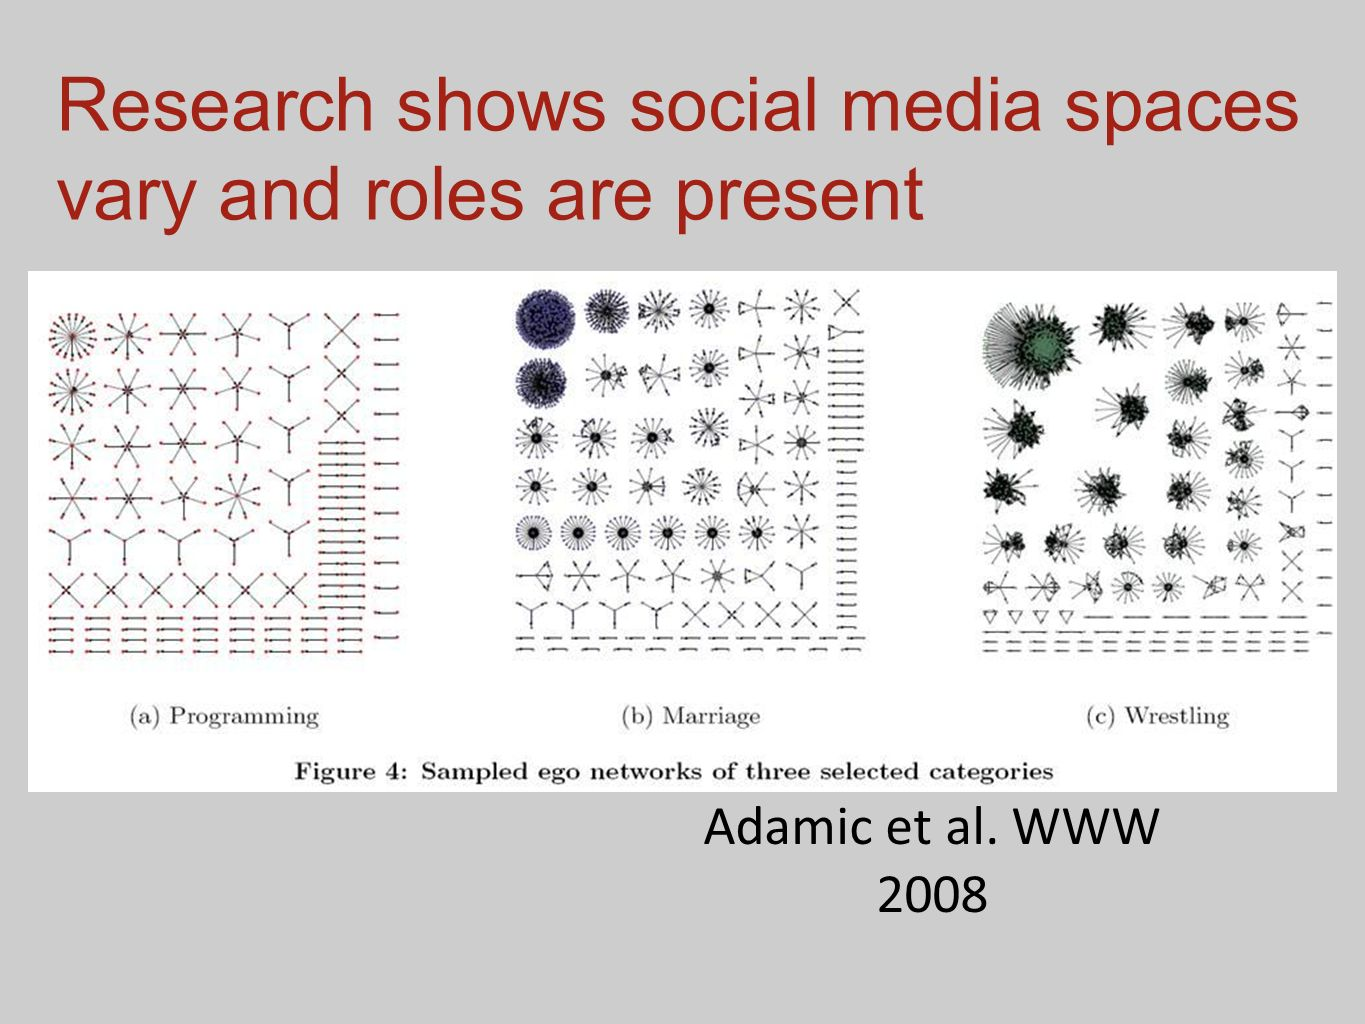 Research shows social media spaces vary and roles are present